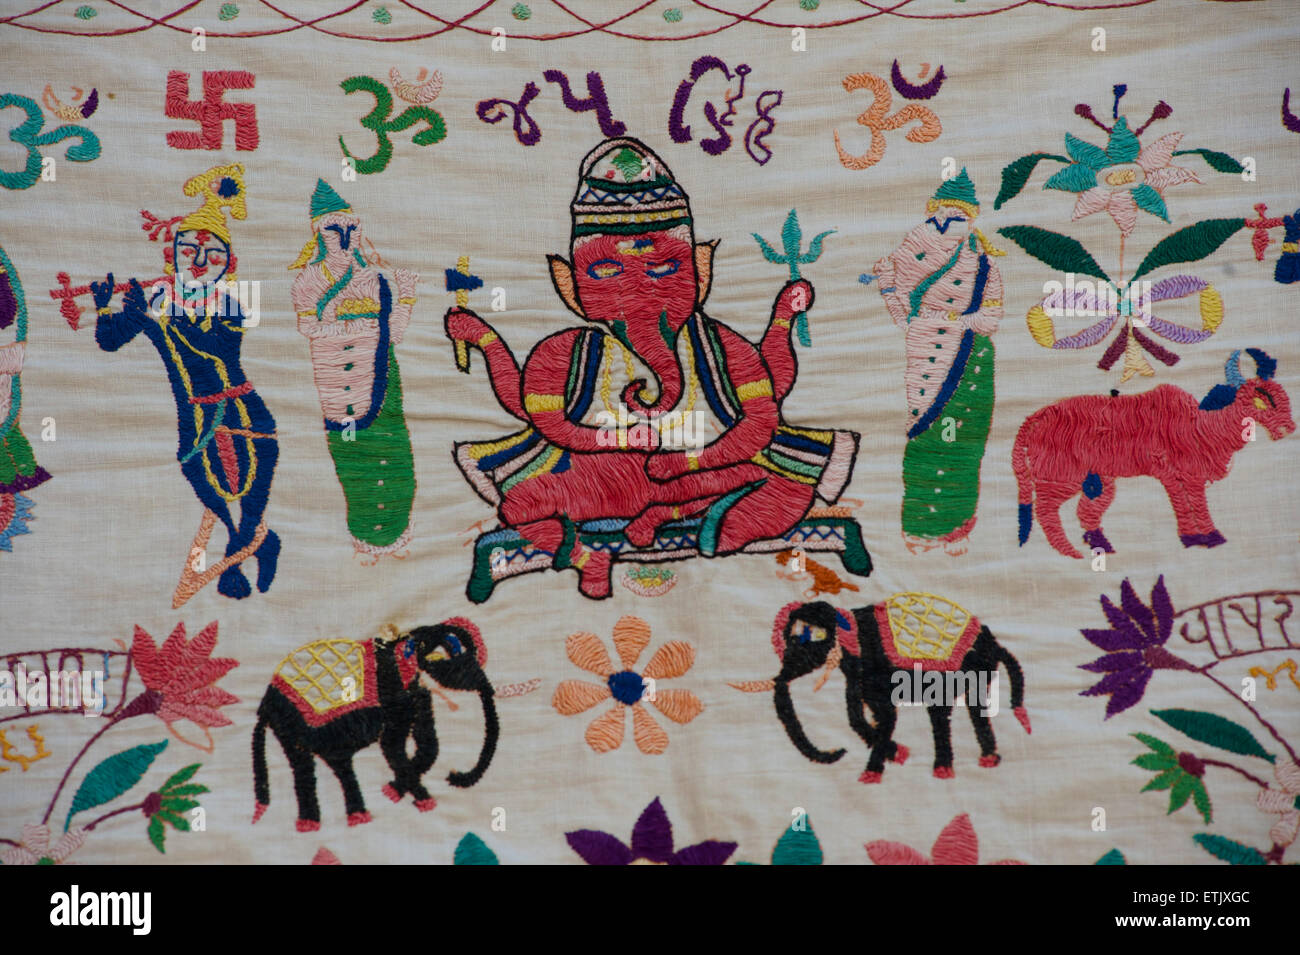 Embroidered textile depicting ganesh and elephants. Rajasthan, India - Stock Image